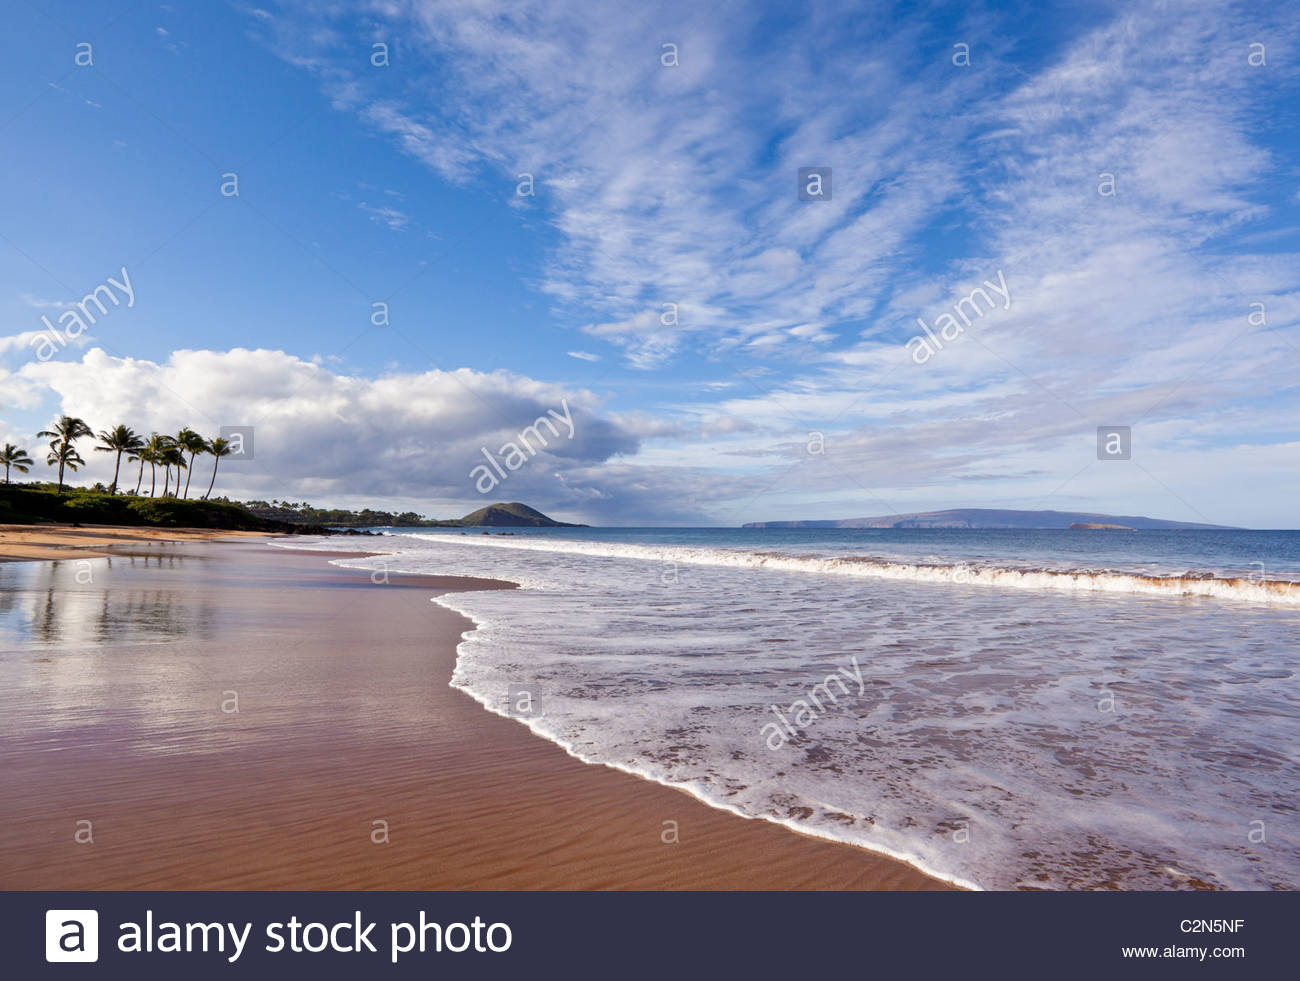 Gentle surf good for swimming on Po'olenalena Beach at Makena on the island of Maui in the State of Hawaii USA. - Stock Image